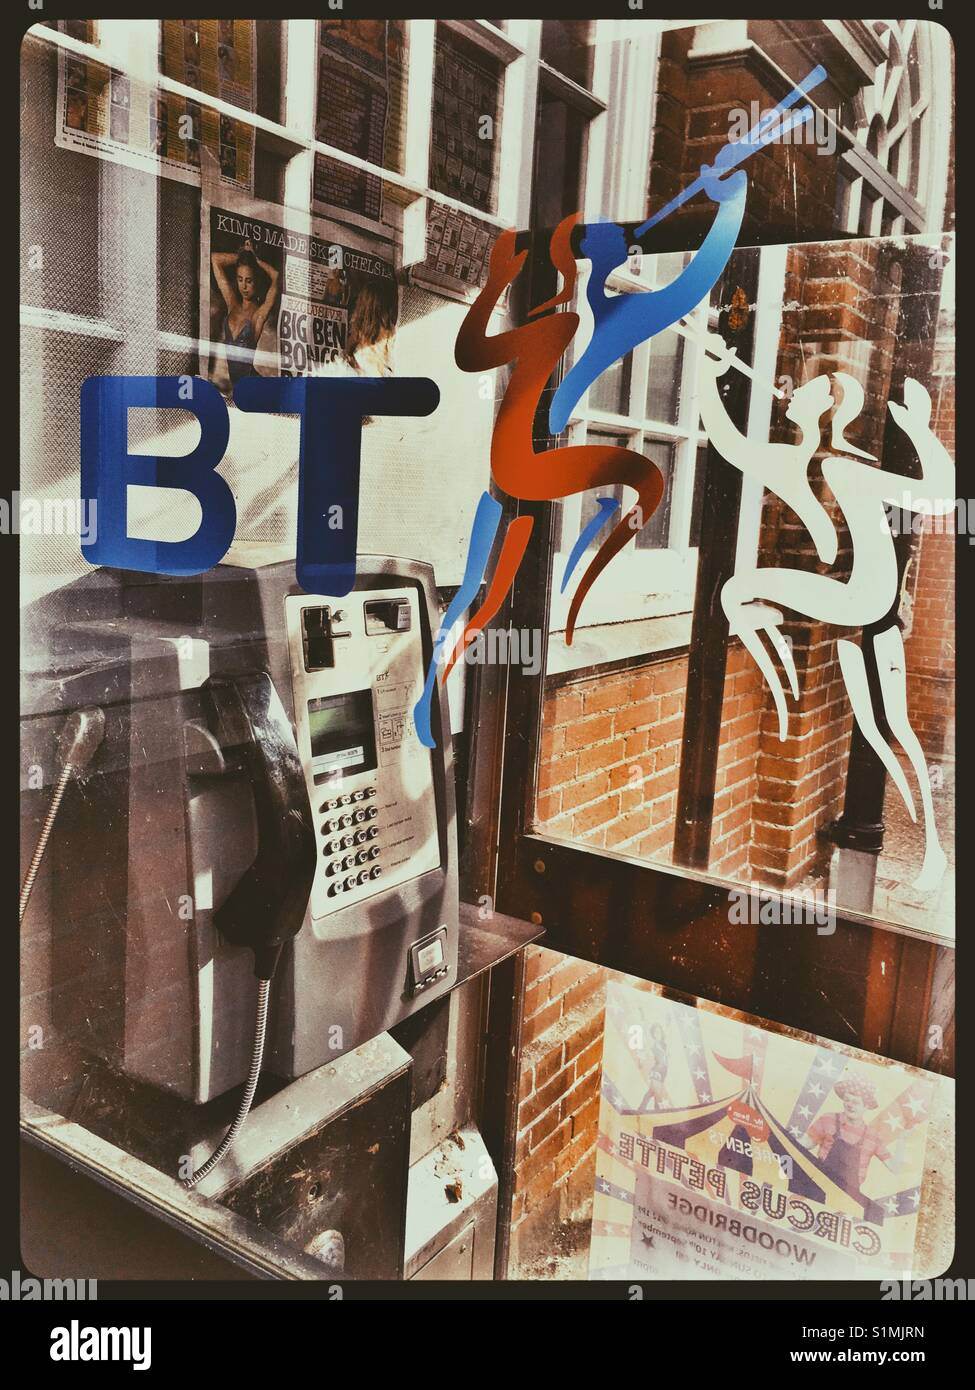 1990's BT Telephone Kiosk with The Herald Logo in both Colourand Black and White variants. - Stock Image